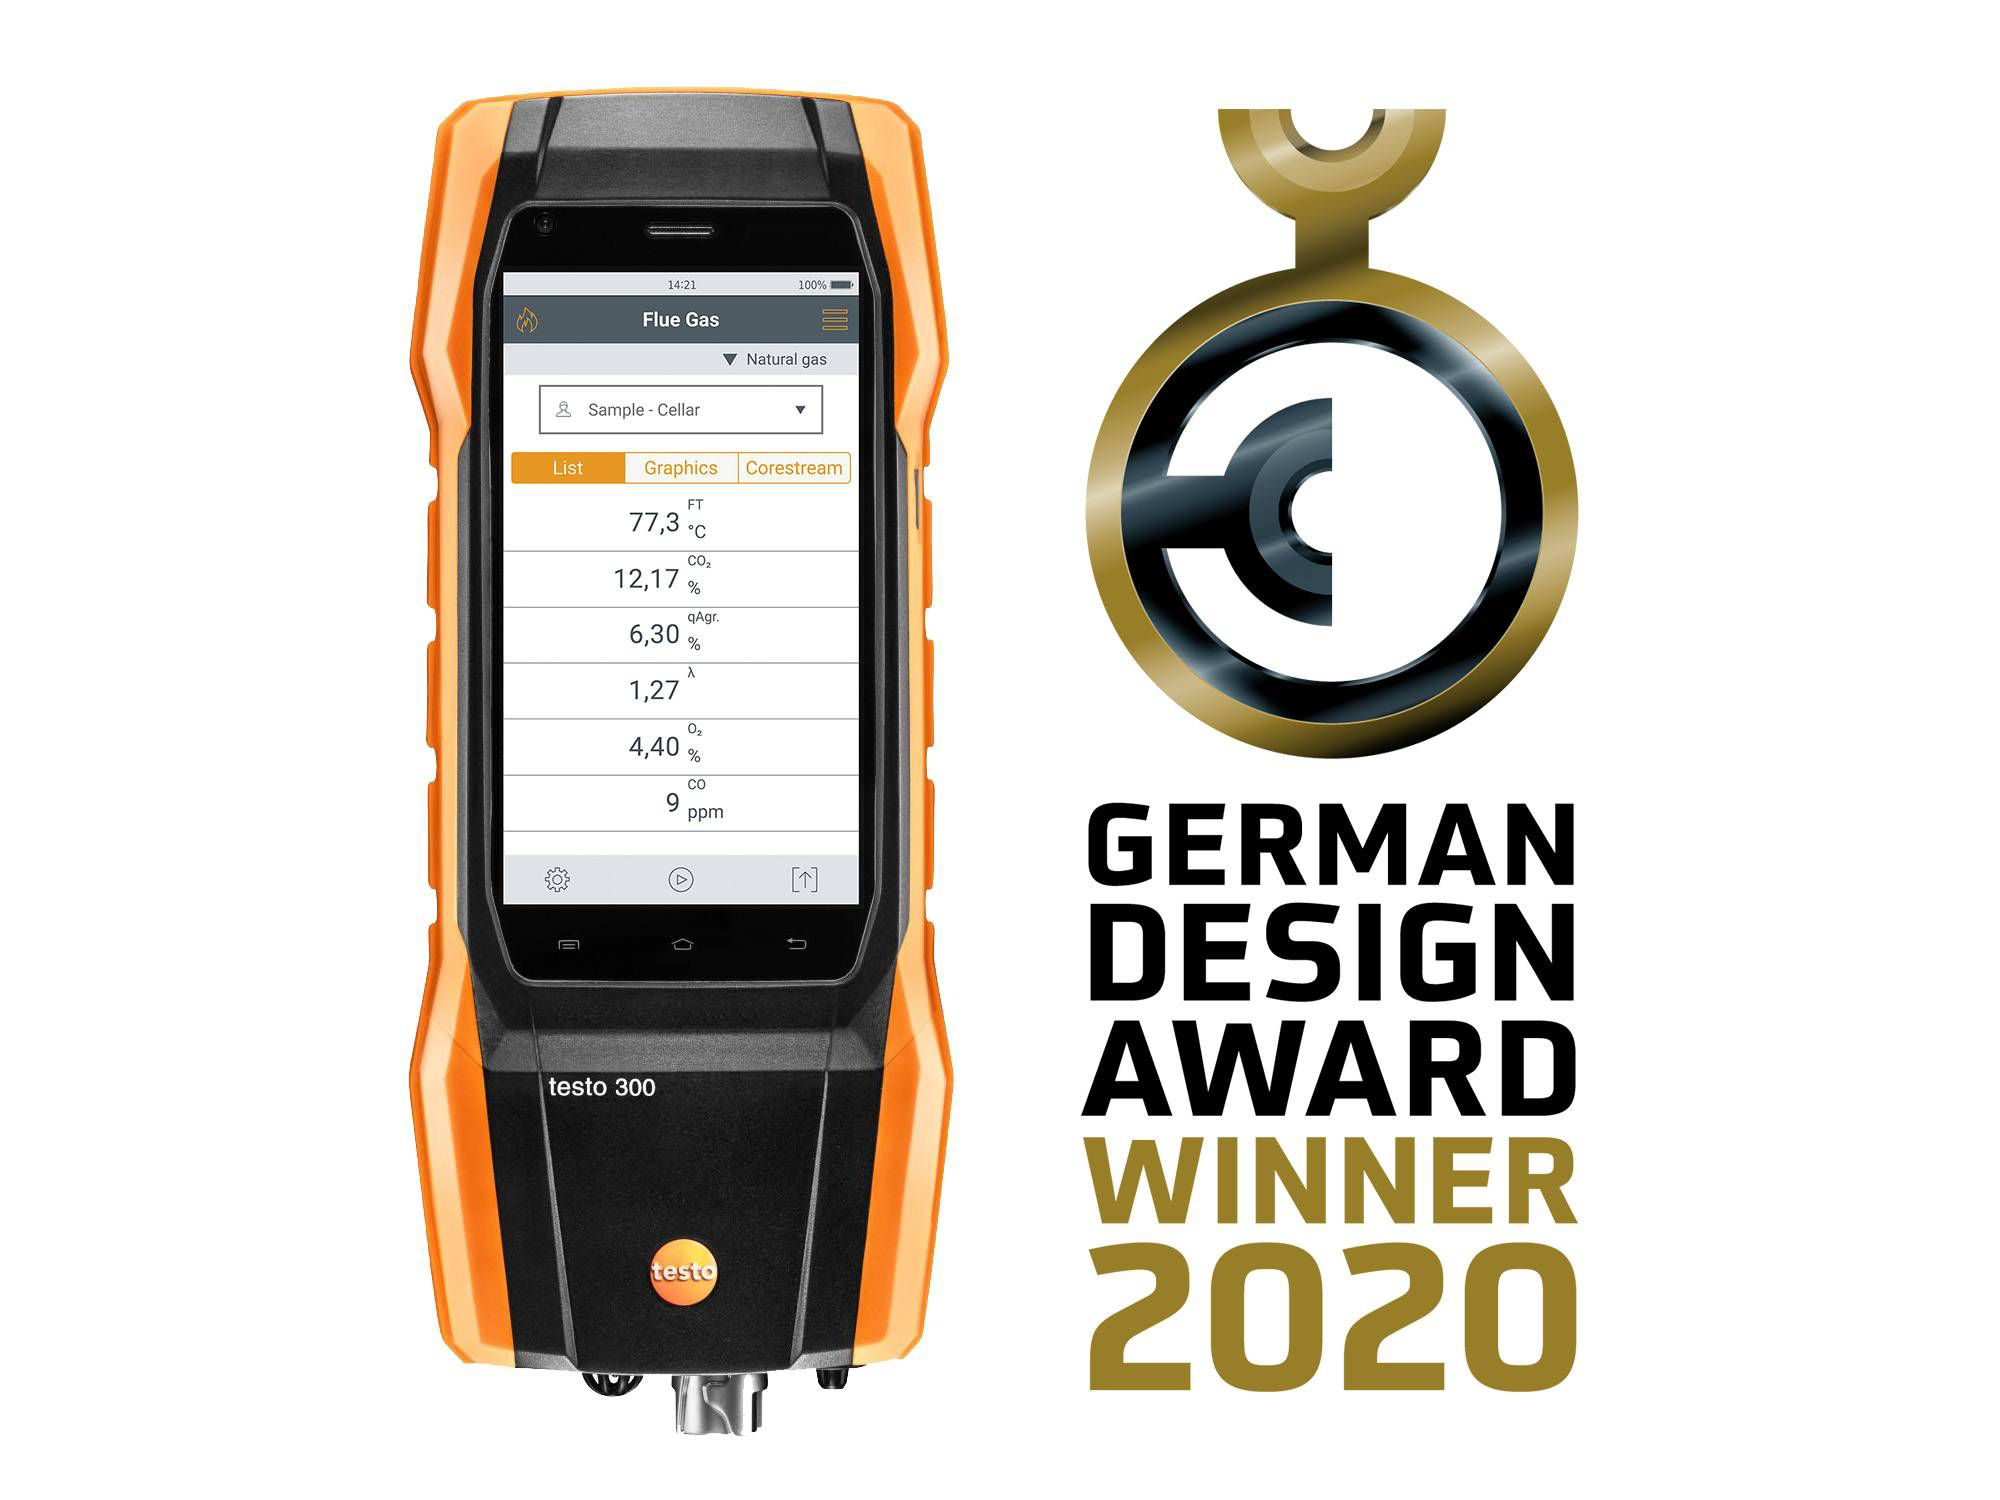 testo 300 German Design Award